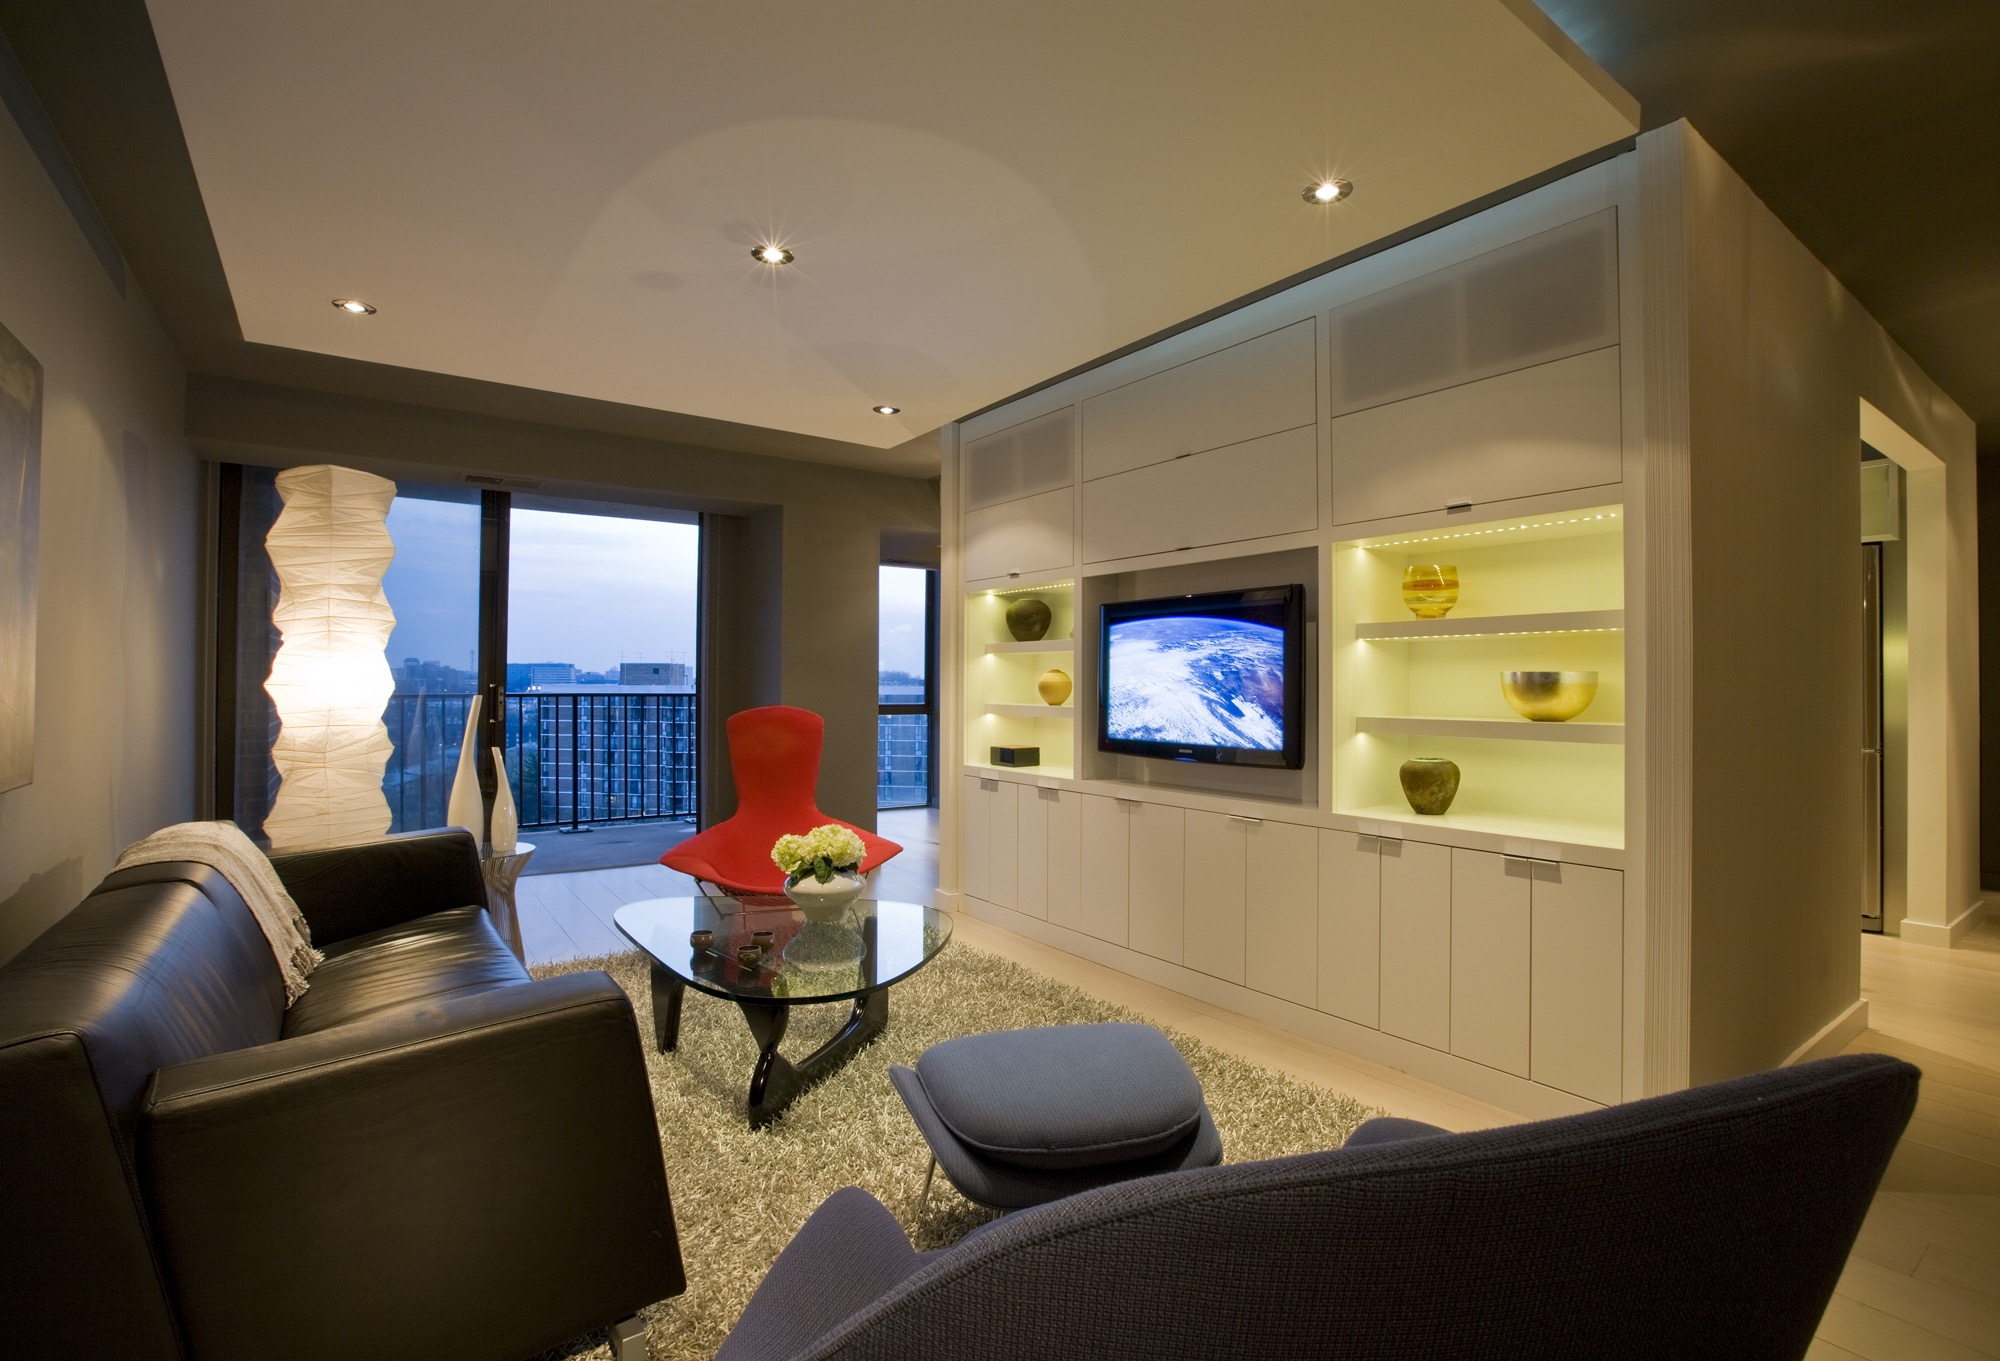 Modern Living Room And Cozy Entertainment Center (Image 11 of 15)